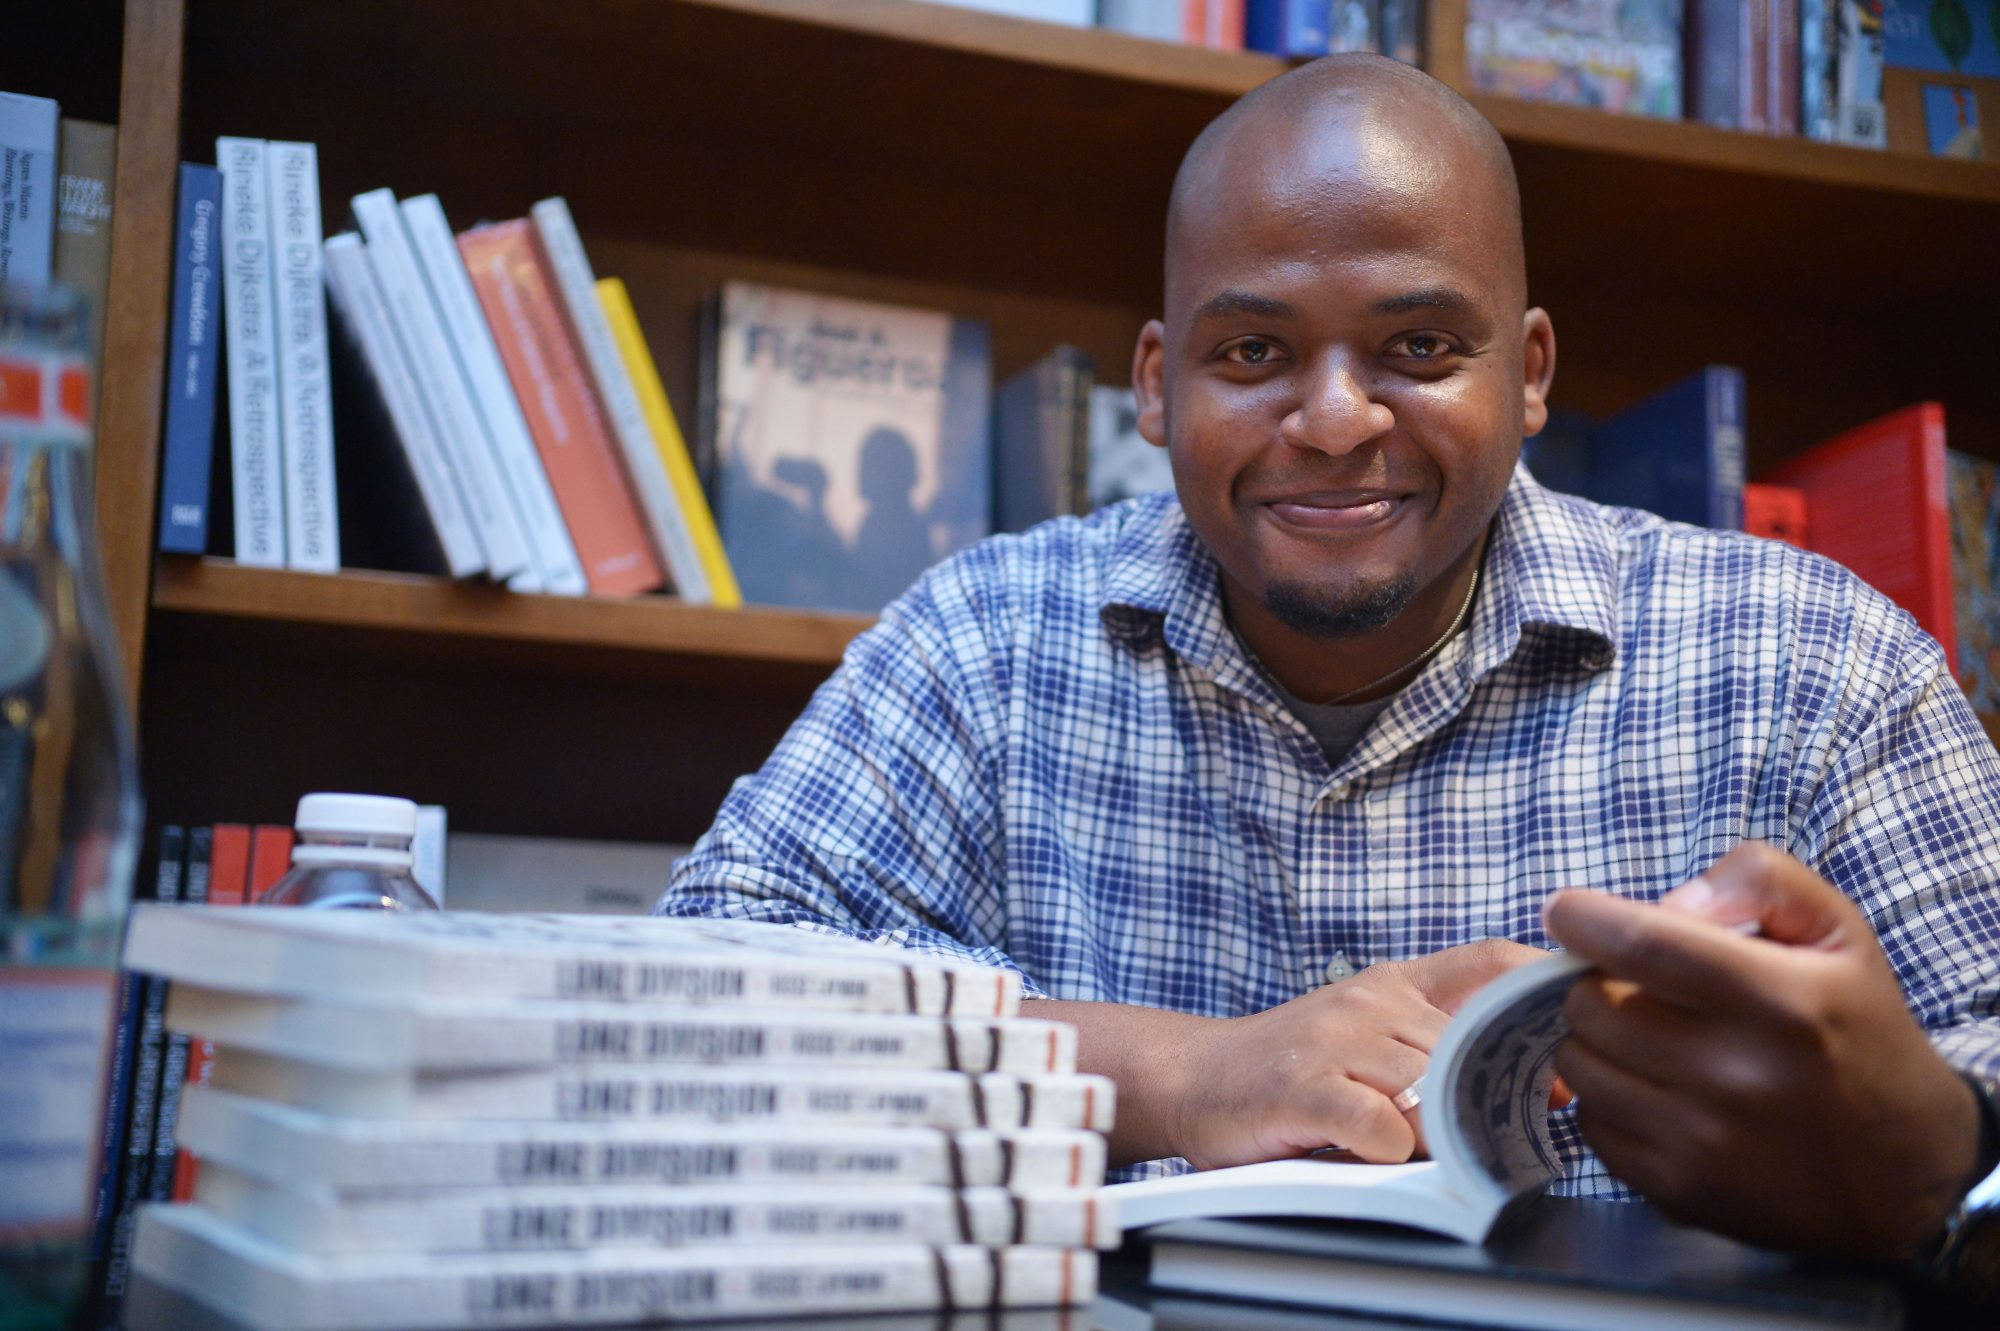 Writer and Professor Kiese Laymon